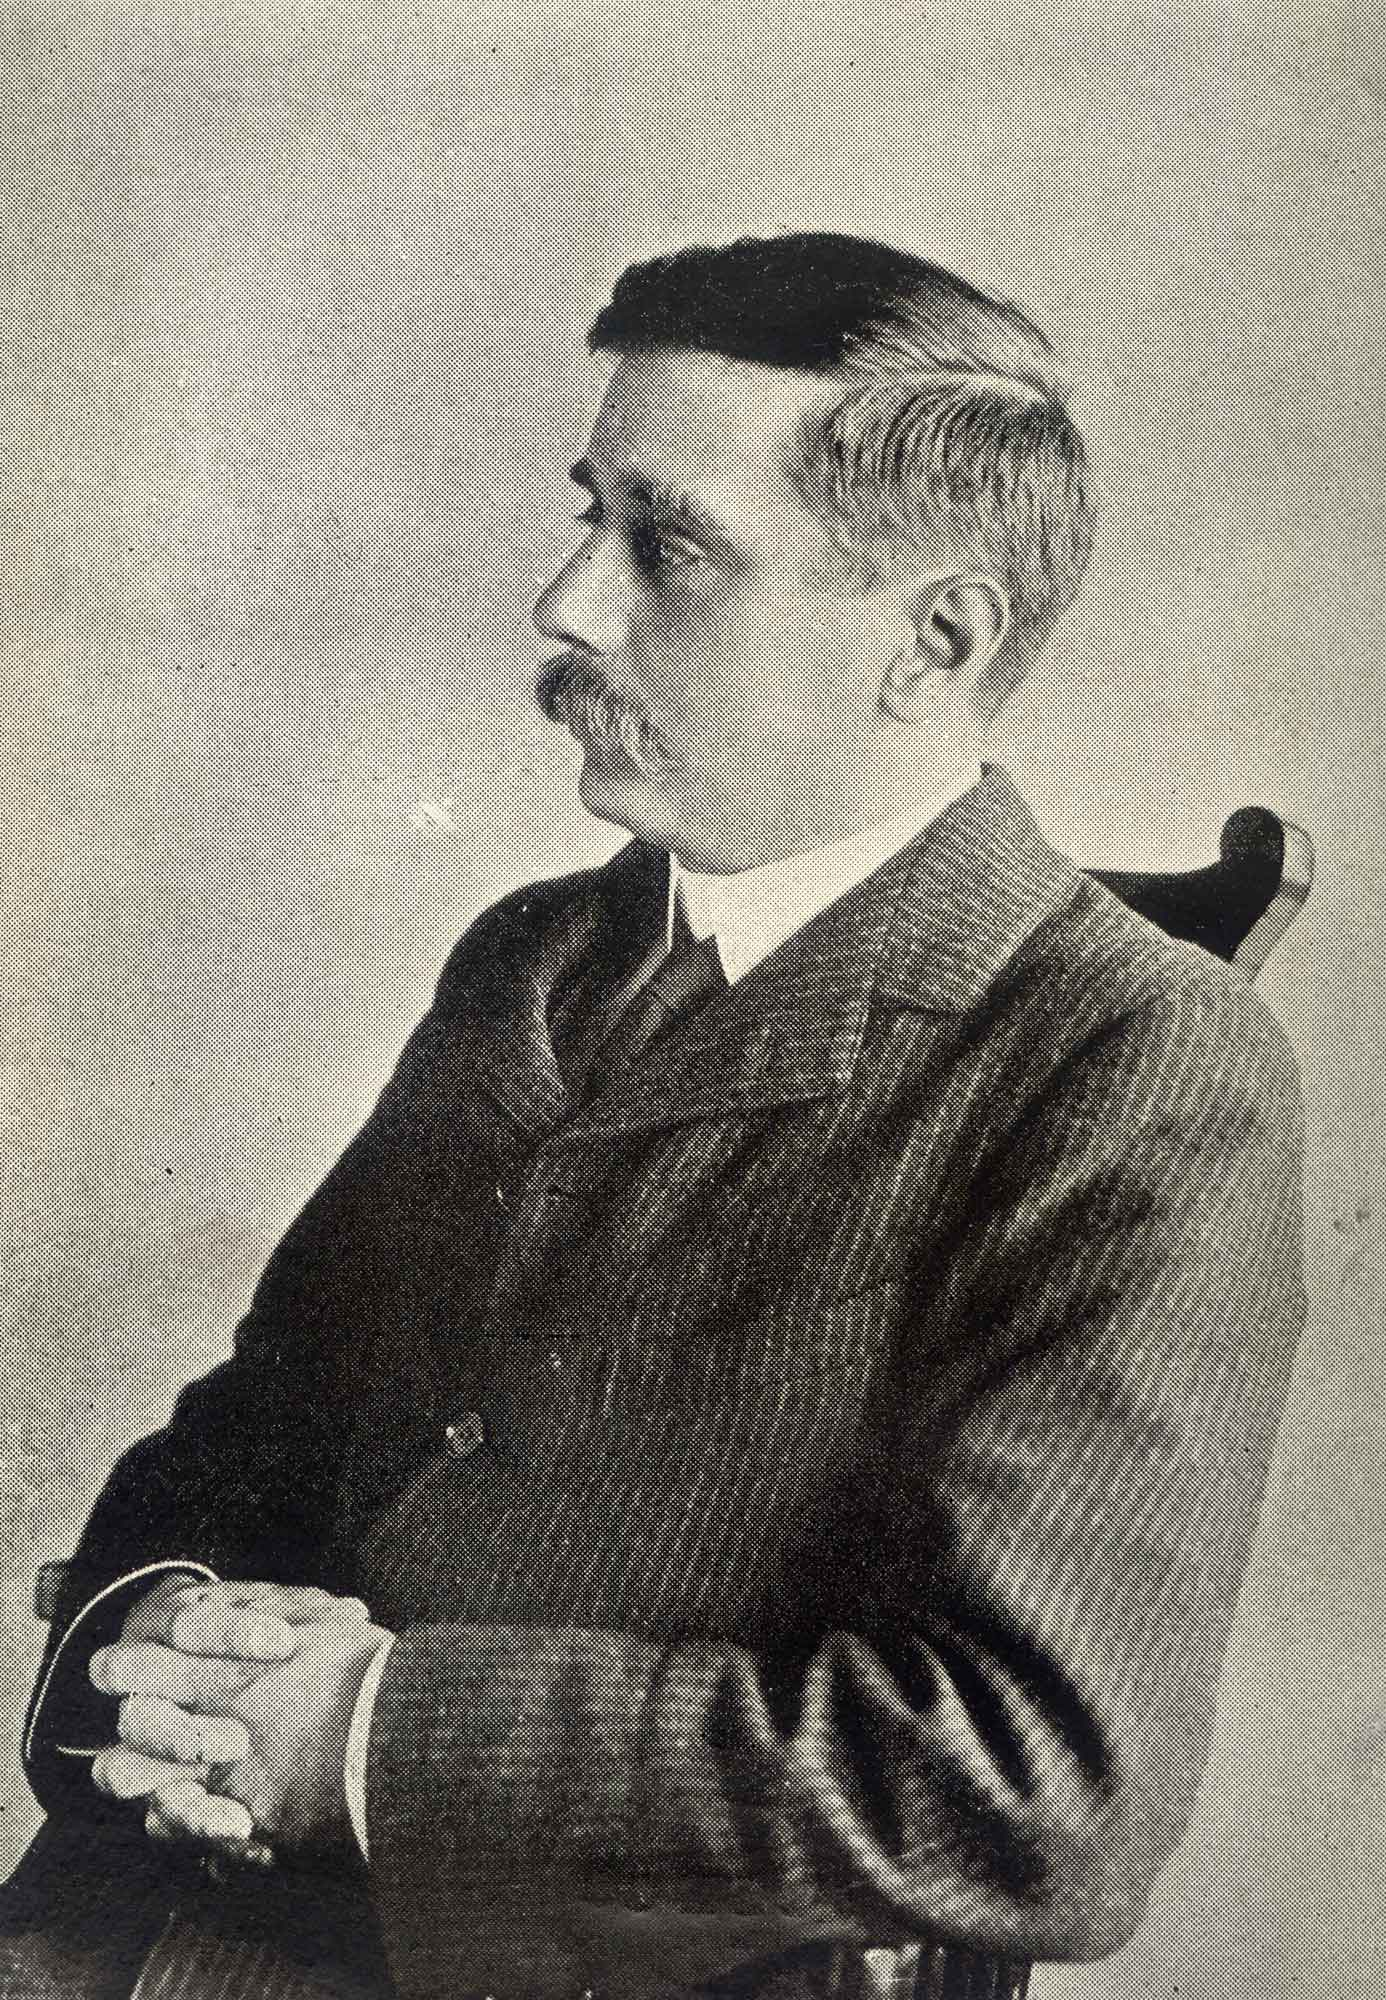 Photograph of Herbert George Wells (H G Wells), author of The Time Machine and War of the Worlds.